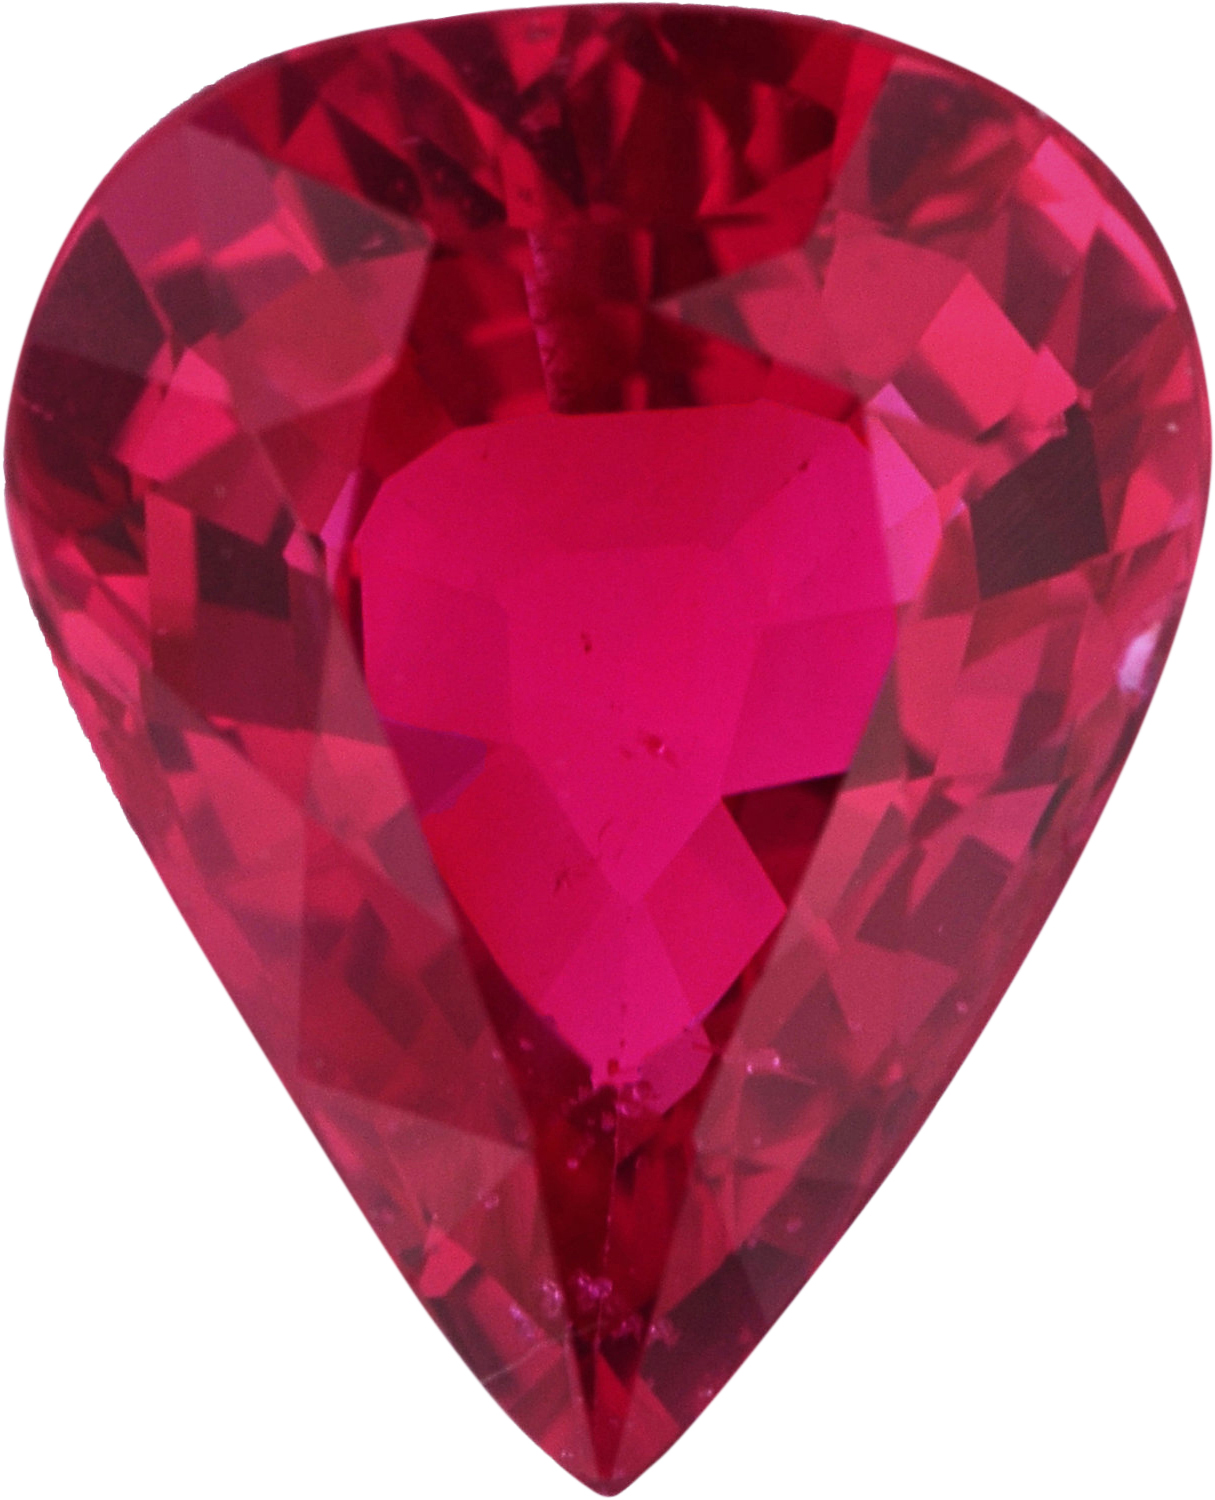 Excellent  Unheated Ruby Loose Gem in Pear Cut, Medium Purple Red, 8.10 x 6.56  mm, 1.5 Carats